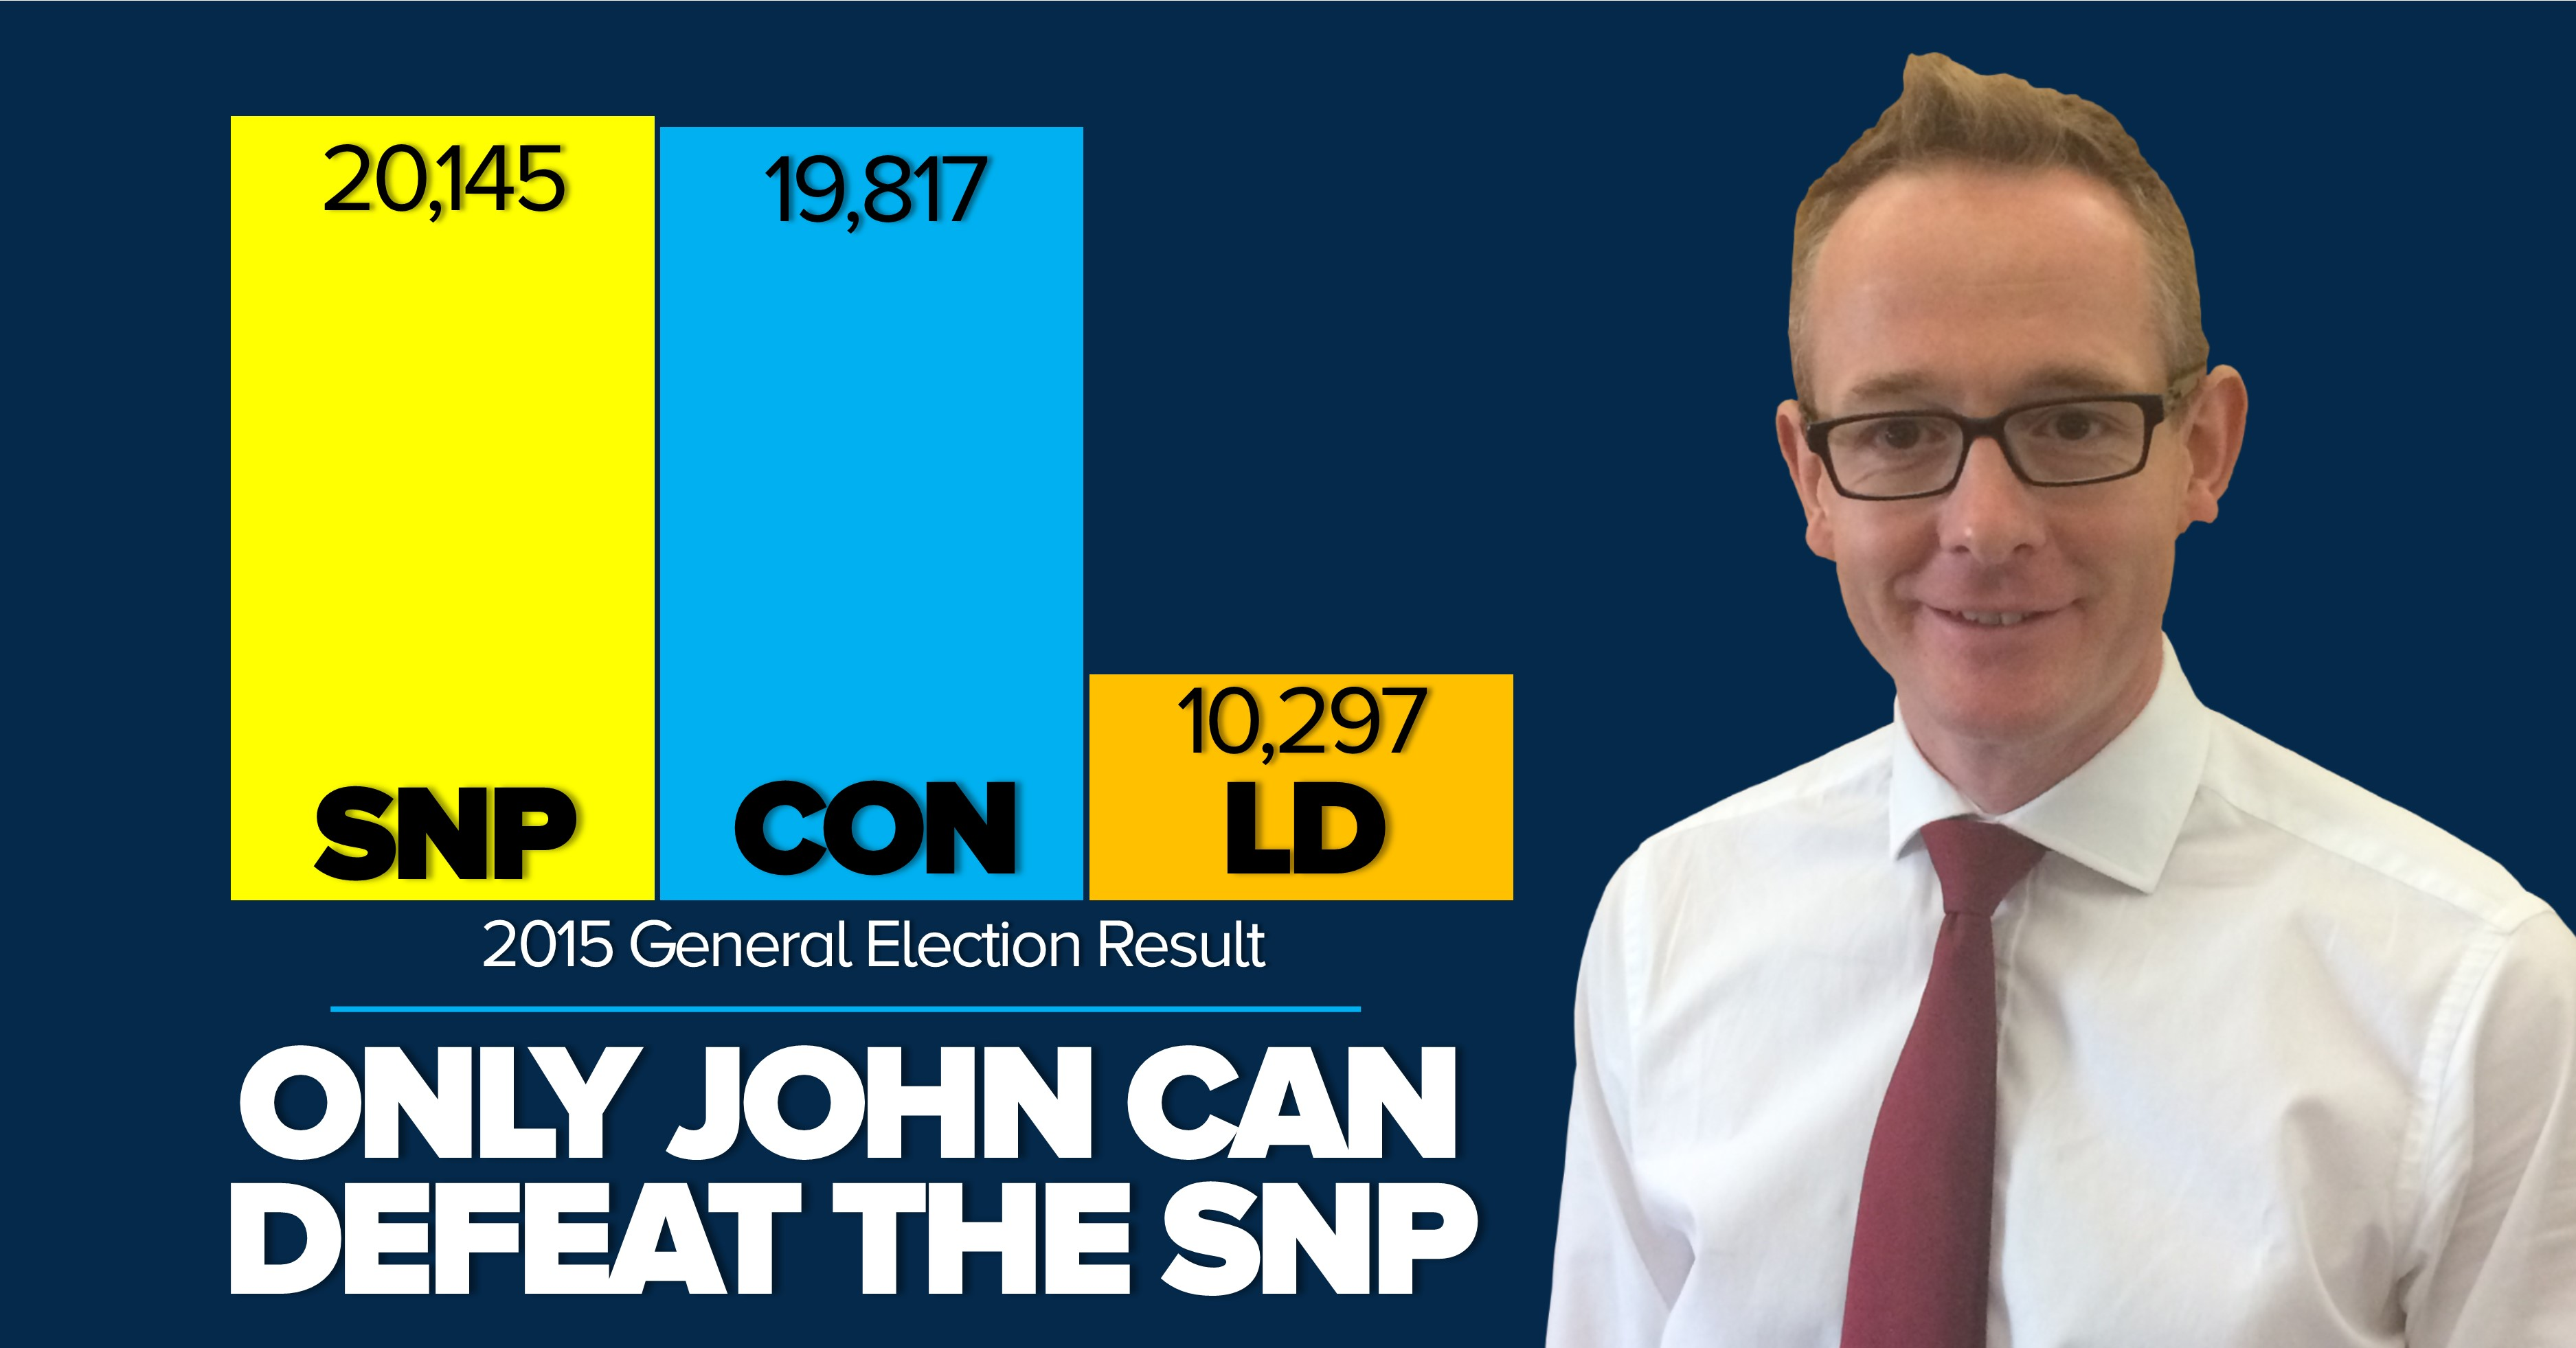 Graph showing it's neck and neck between John & the SNP